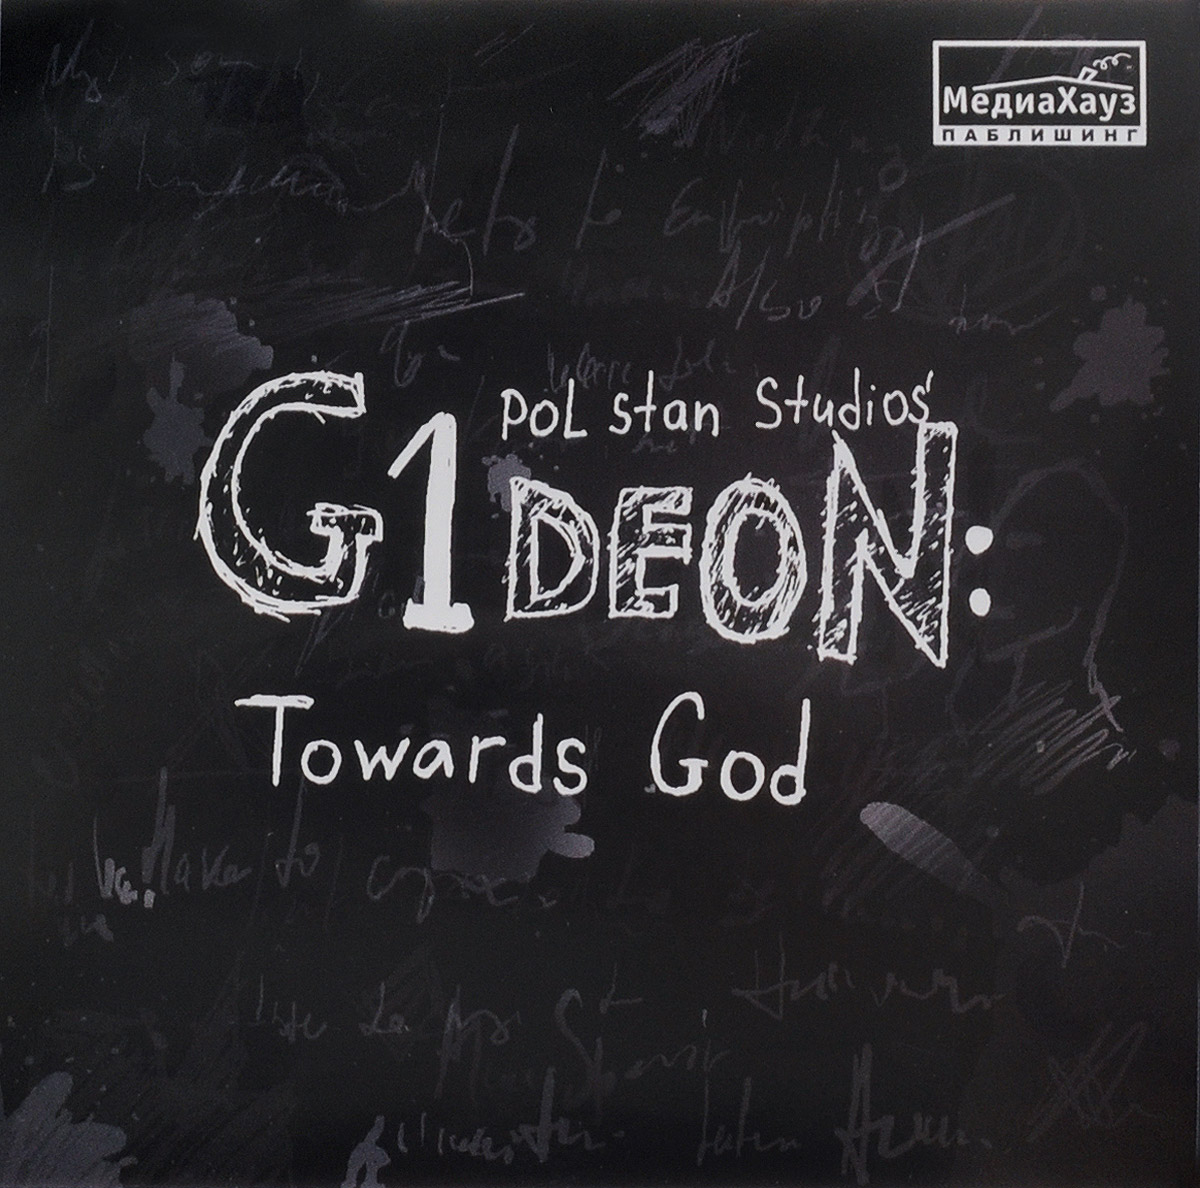 G1Deon: Towards God, PolStan Studios